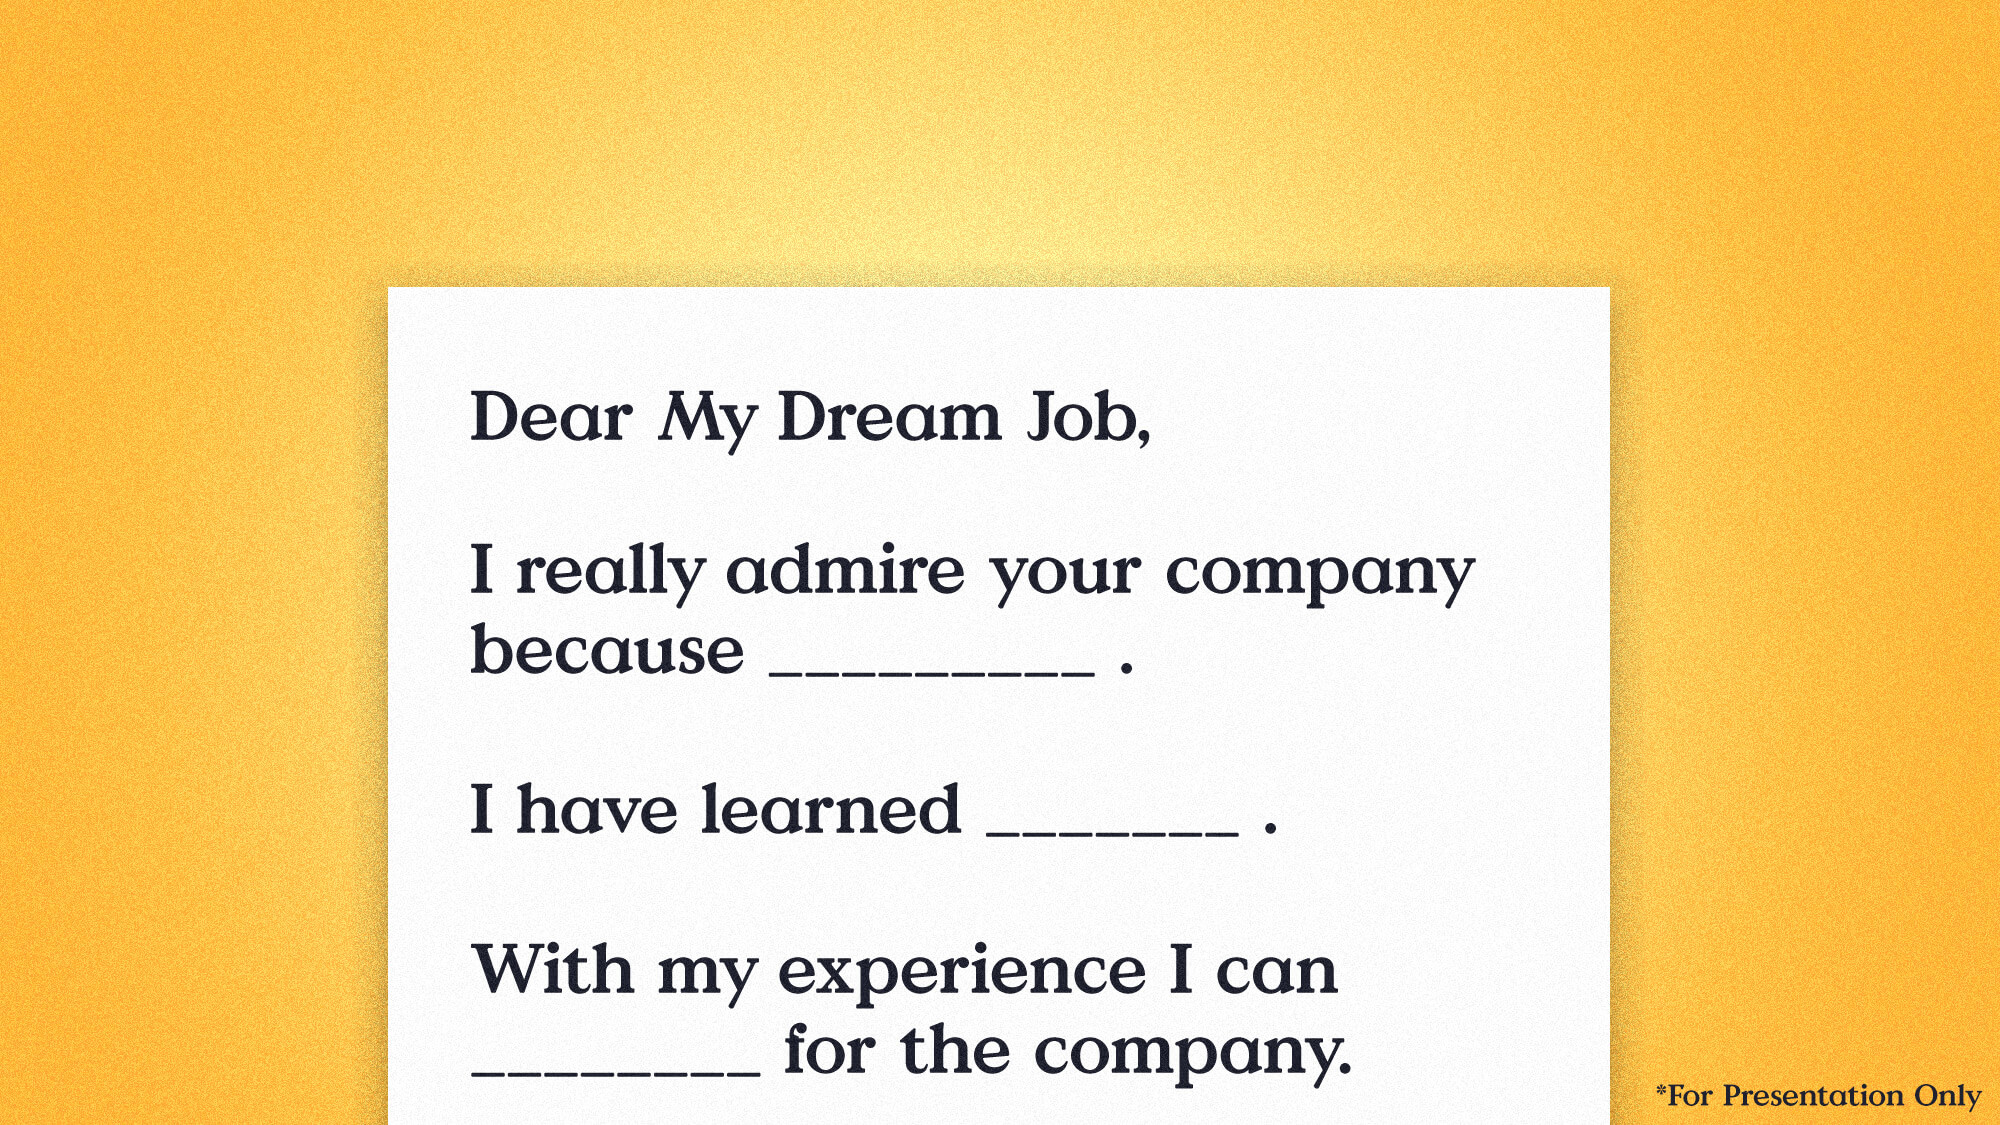 How to Land a Creative Job After Graduating Tip #3: Write unique cover letters